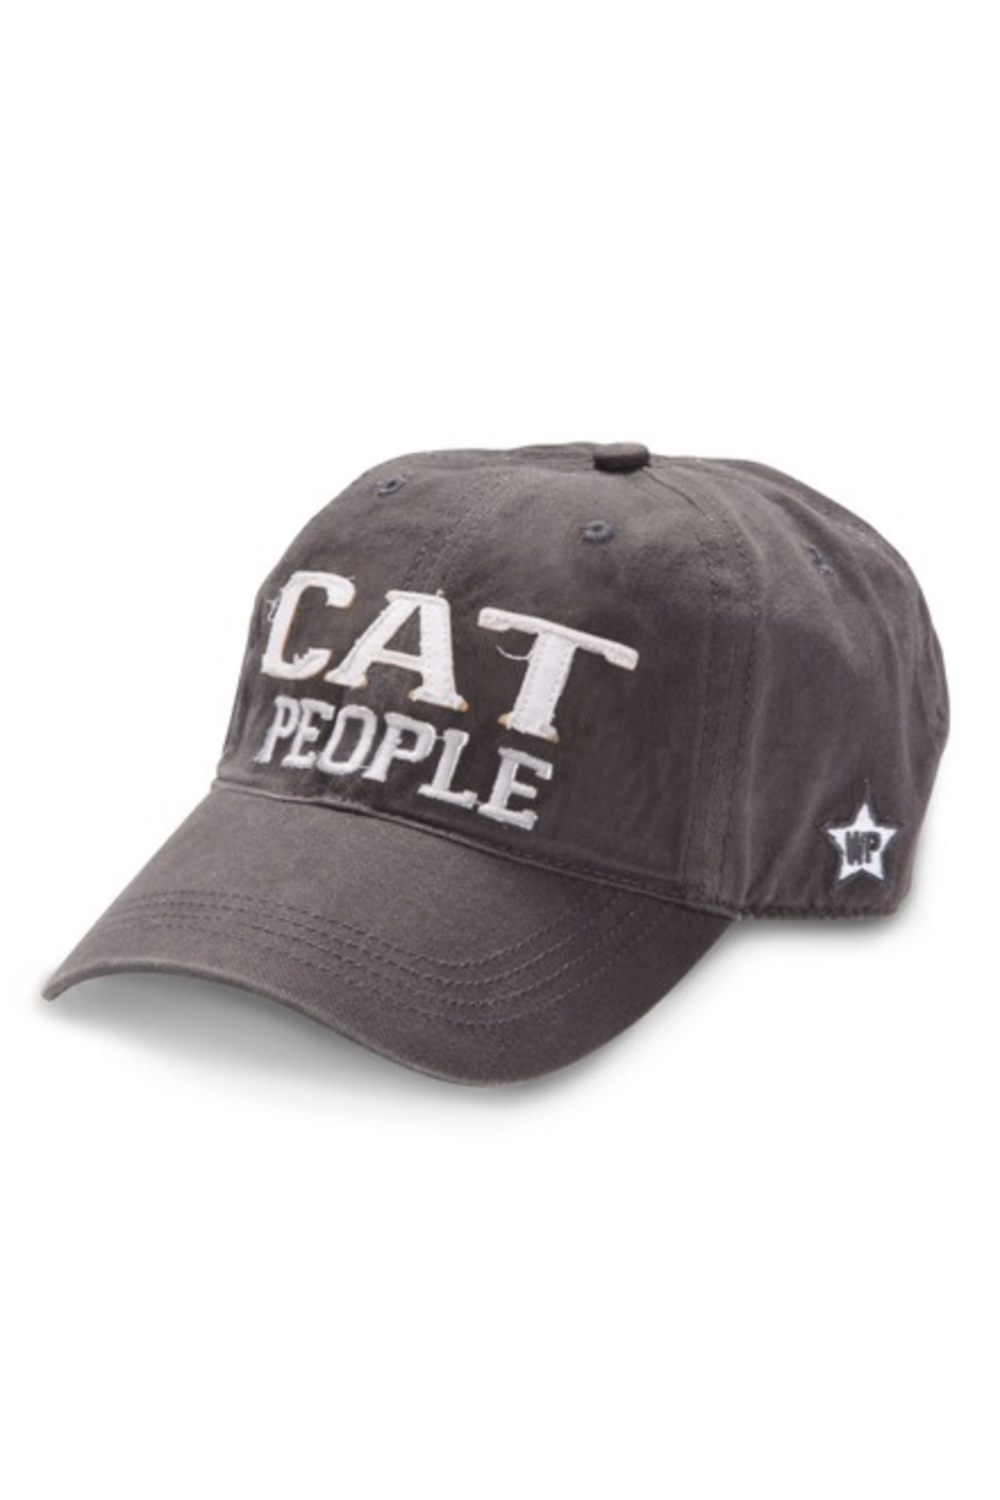 Adjustable Hat - Cat People